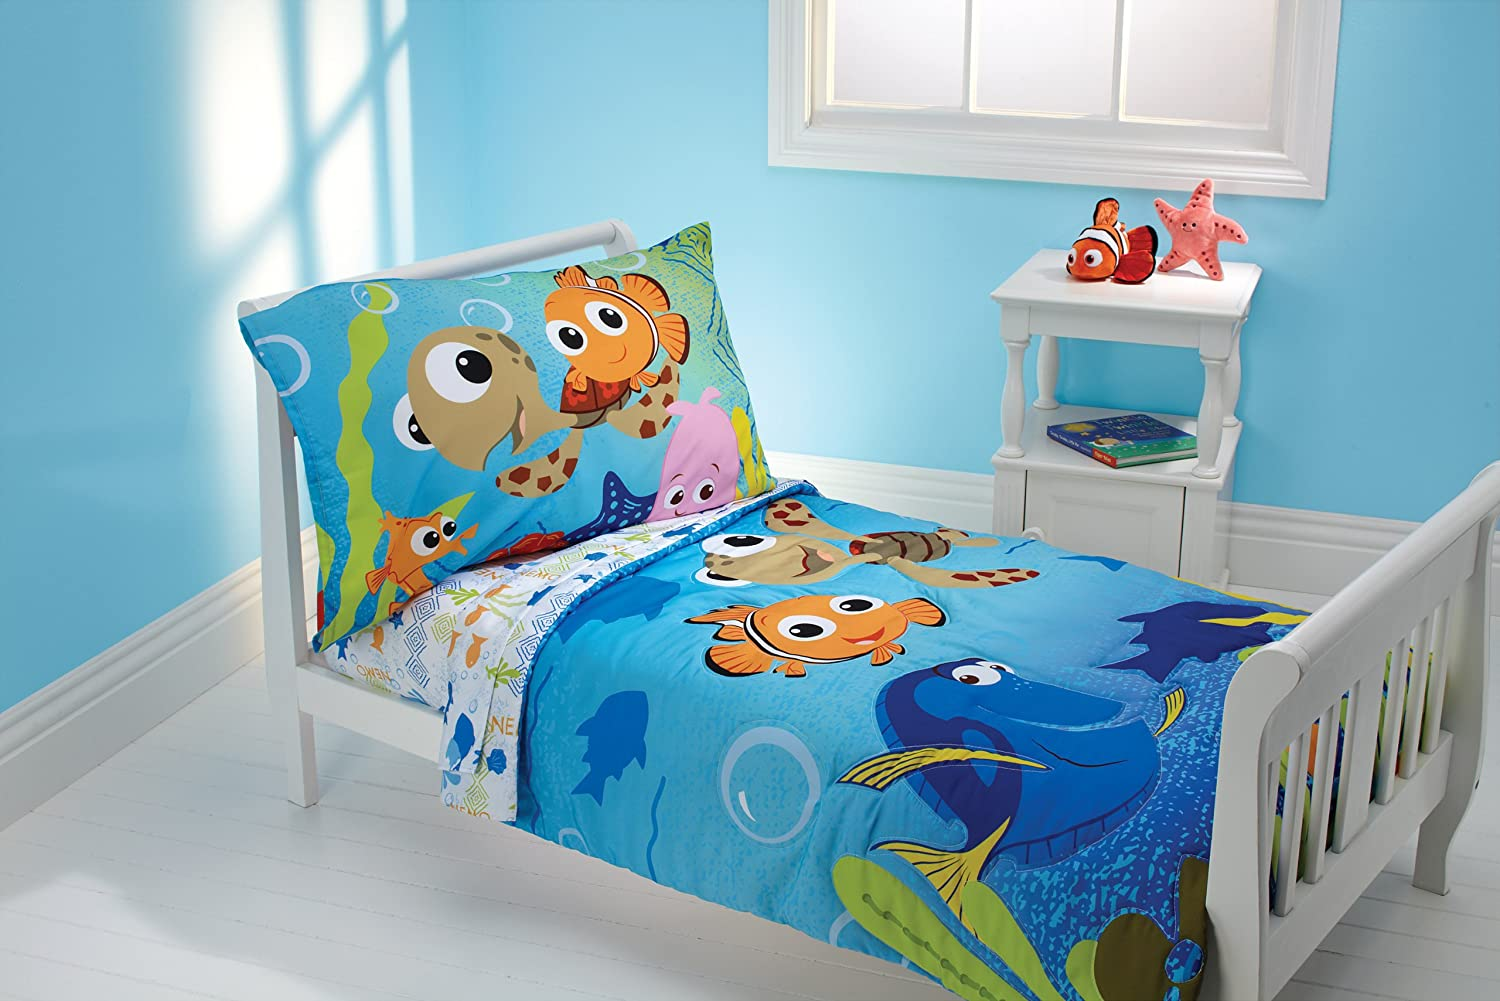 choice bedding house bed for your quilt bedroom with toddler creative inspiration